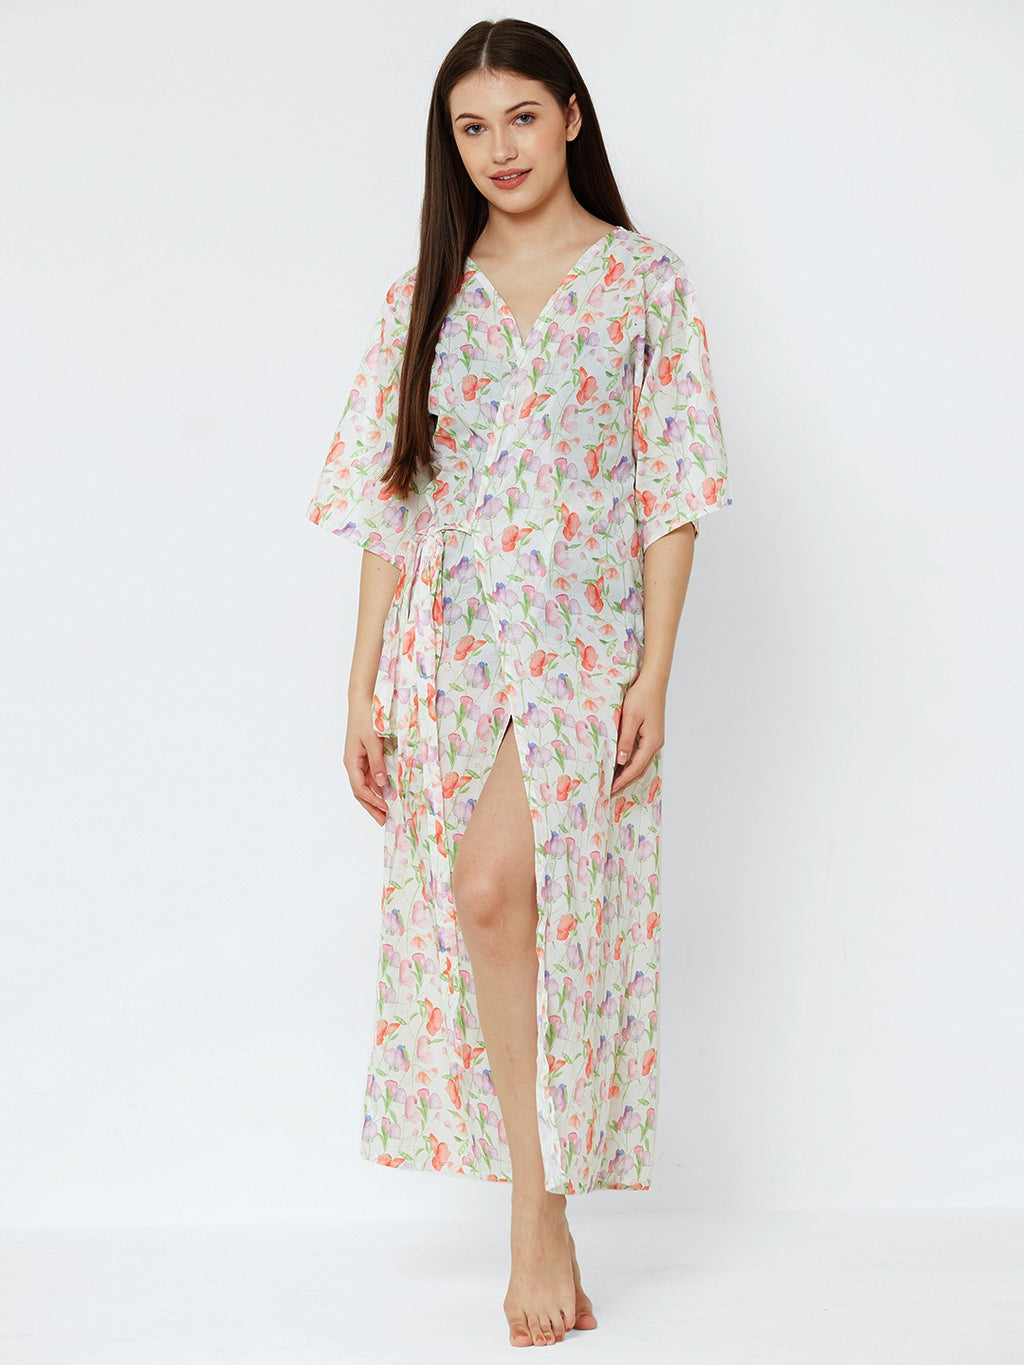 Munroe Island Wrap Dress